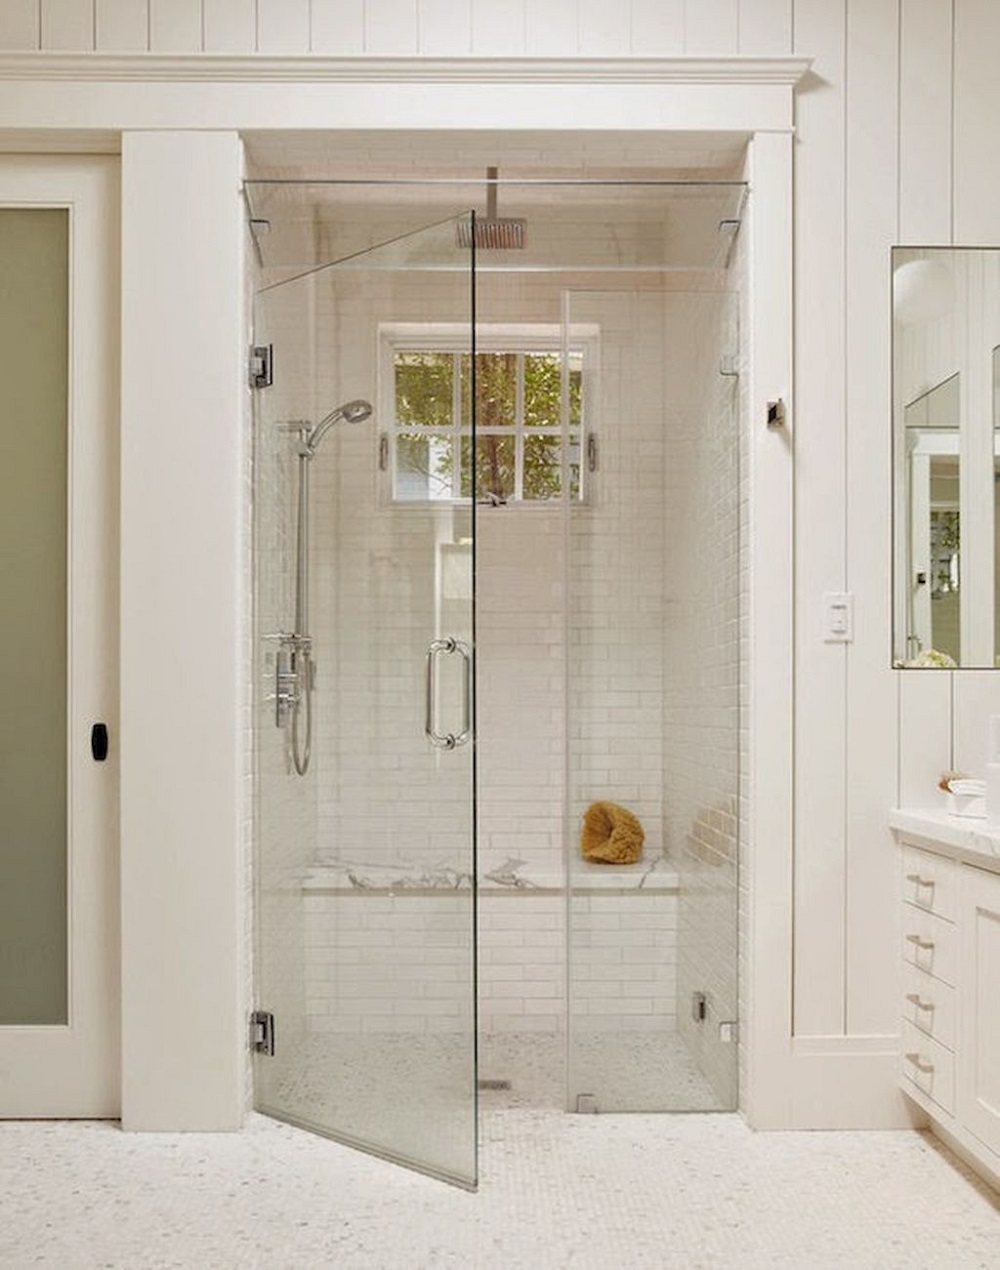 wb10 ideas and tips for walk-in showers (cost, size and more)